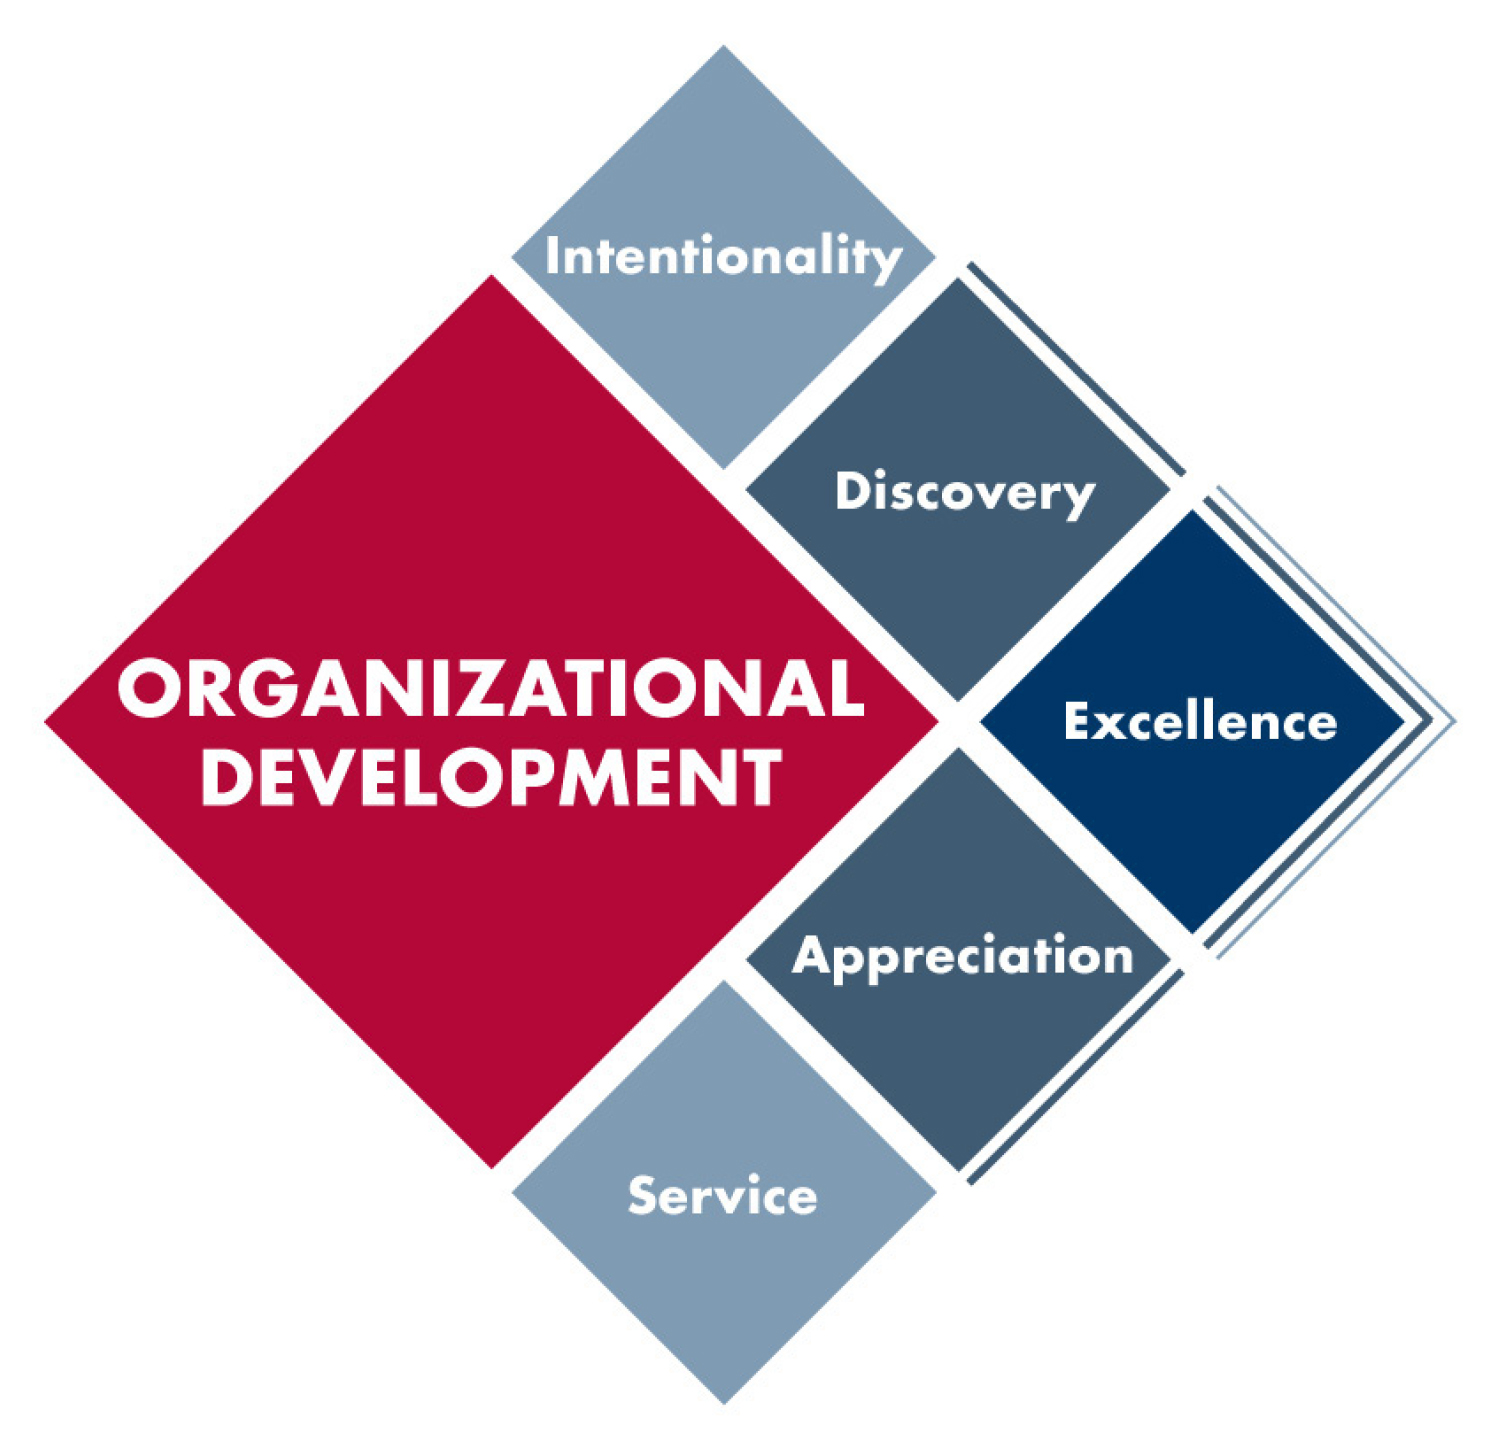 personal and organizational development Florida state university's office of training & organizational development (tod) is responsible for assisting in the achievement of strategic goals and objectives of the fsu organization through a focused delivery of workplace training and personal development amongst university employees.